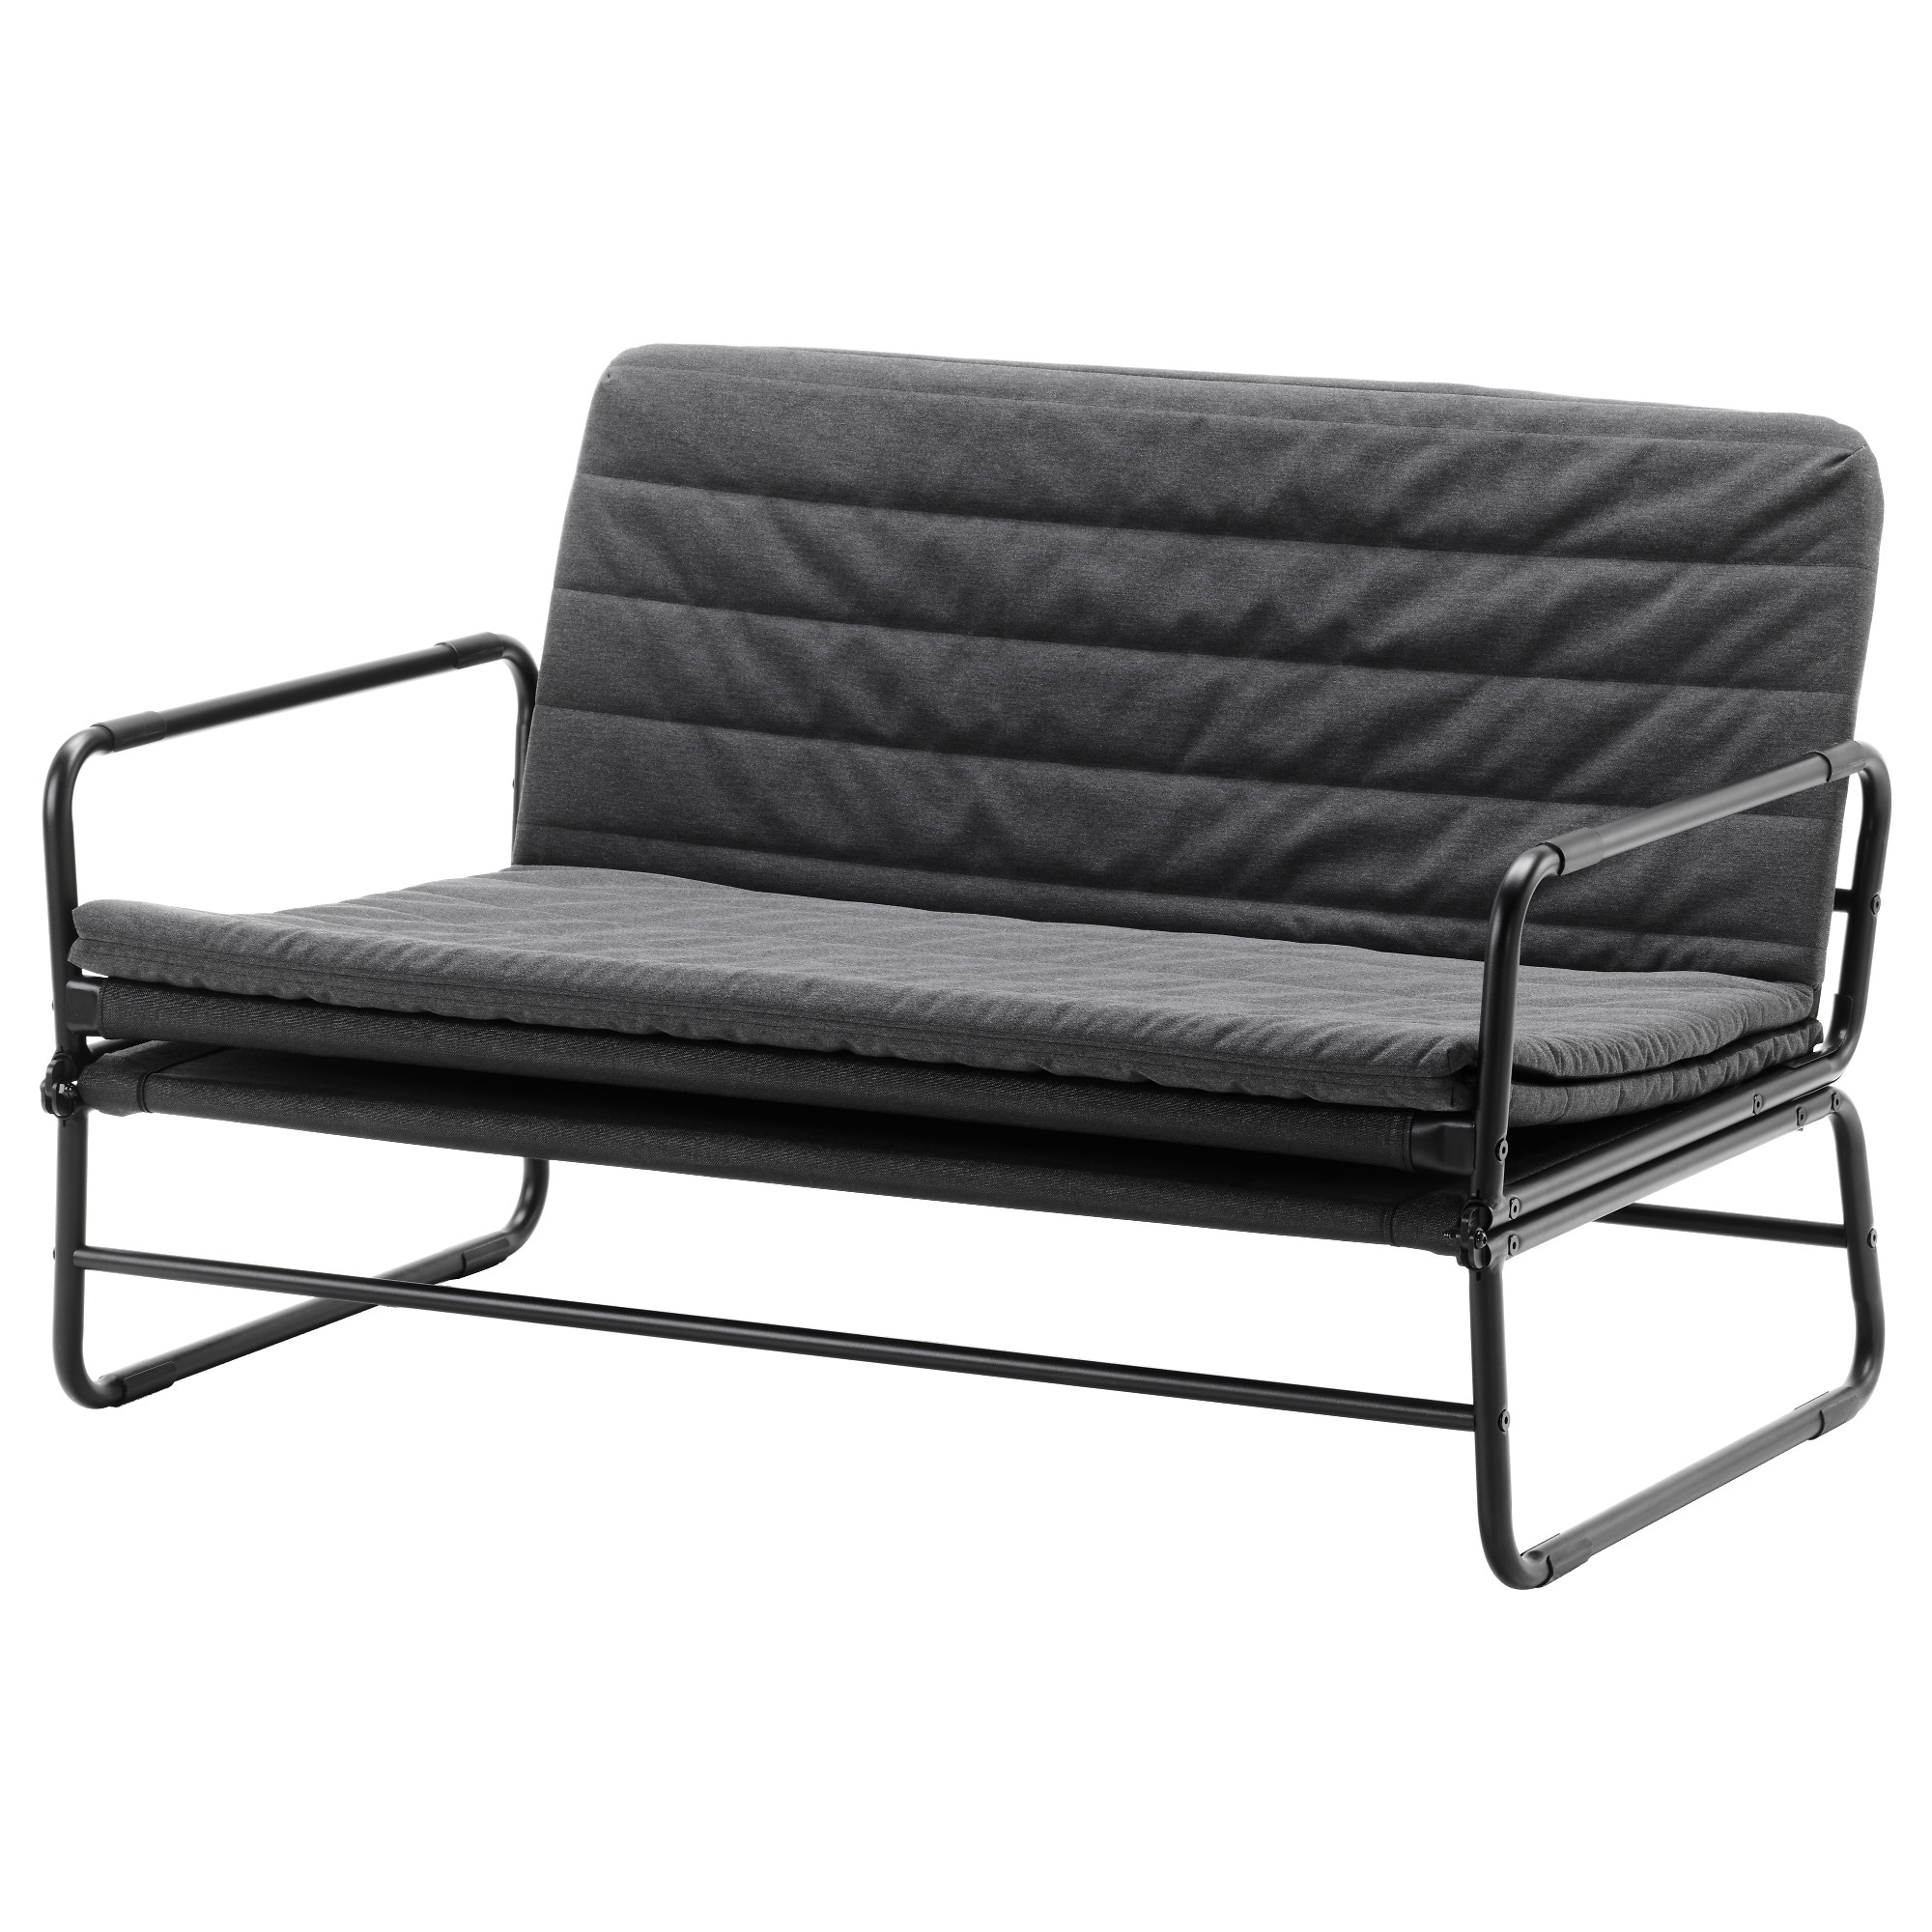 hammarn sofa bed knisa dark grey black ikea rh ikea com sofa bed for small spaces ikea sofa bed for small spaces ikea